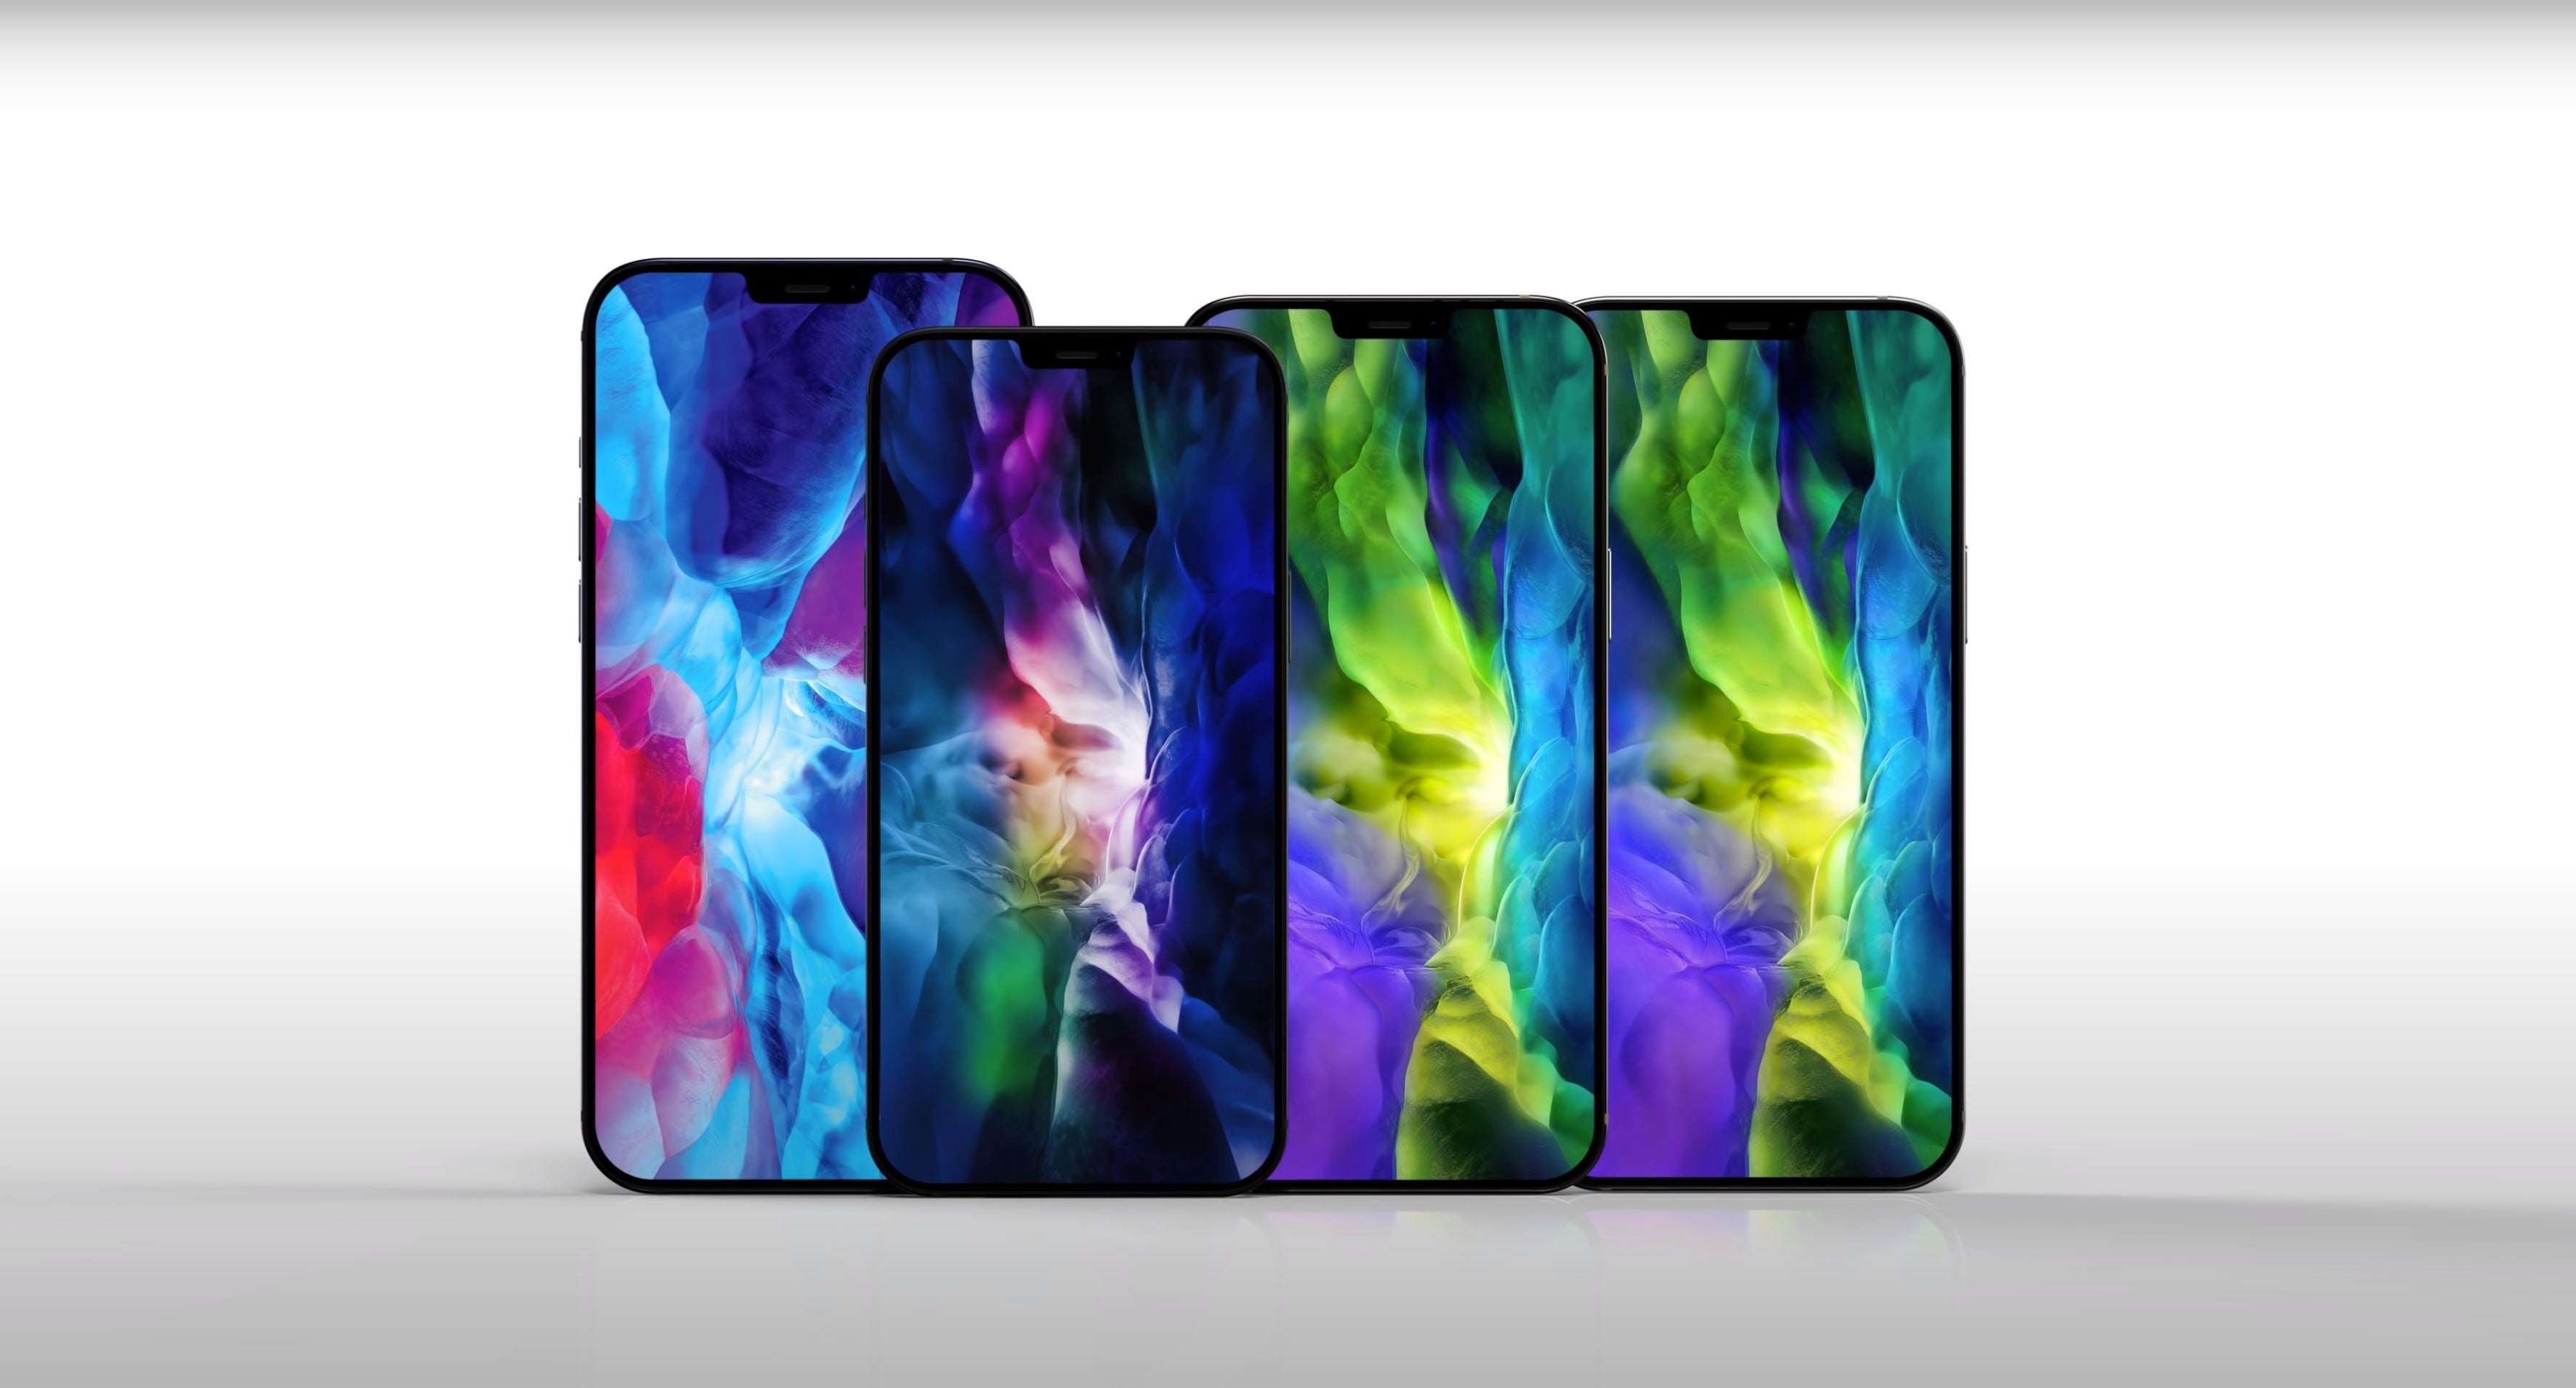 This Video May Have Given Us An Early Look At The iPhone 12